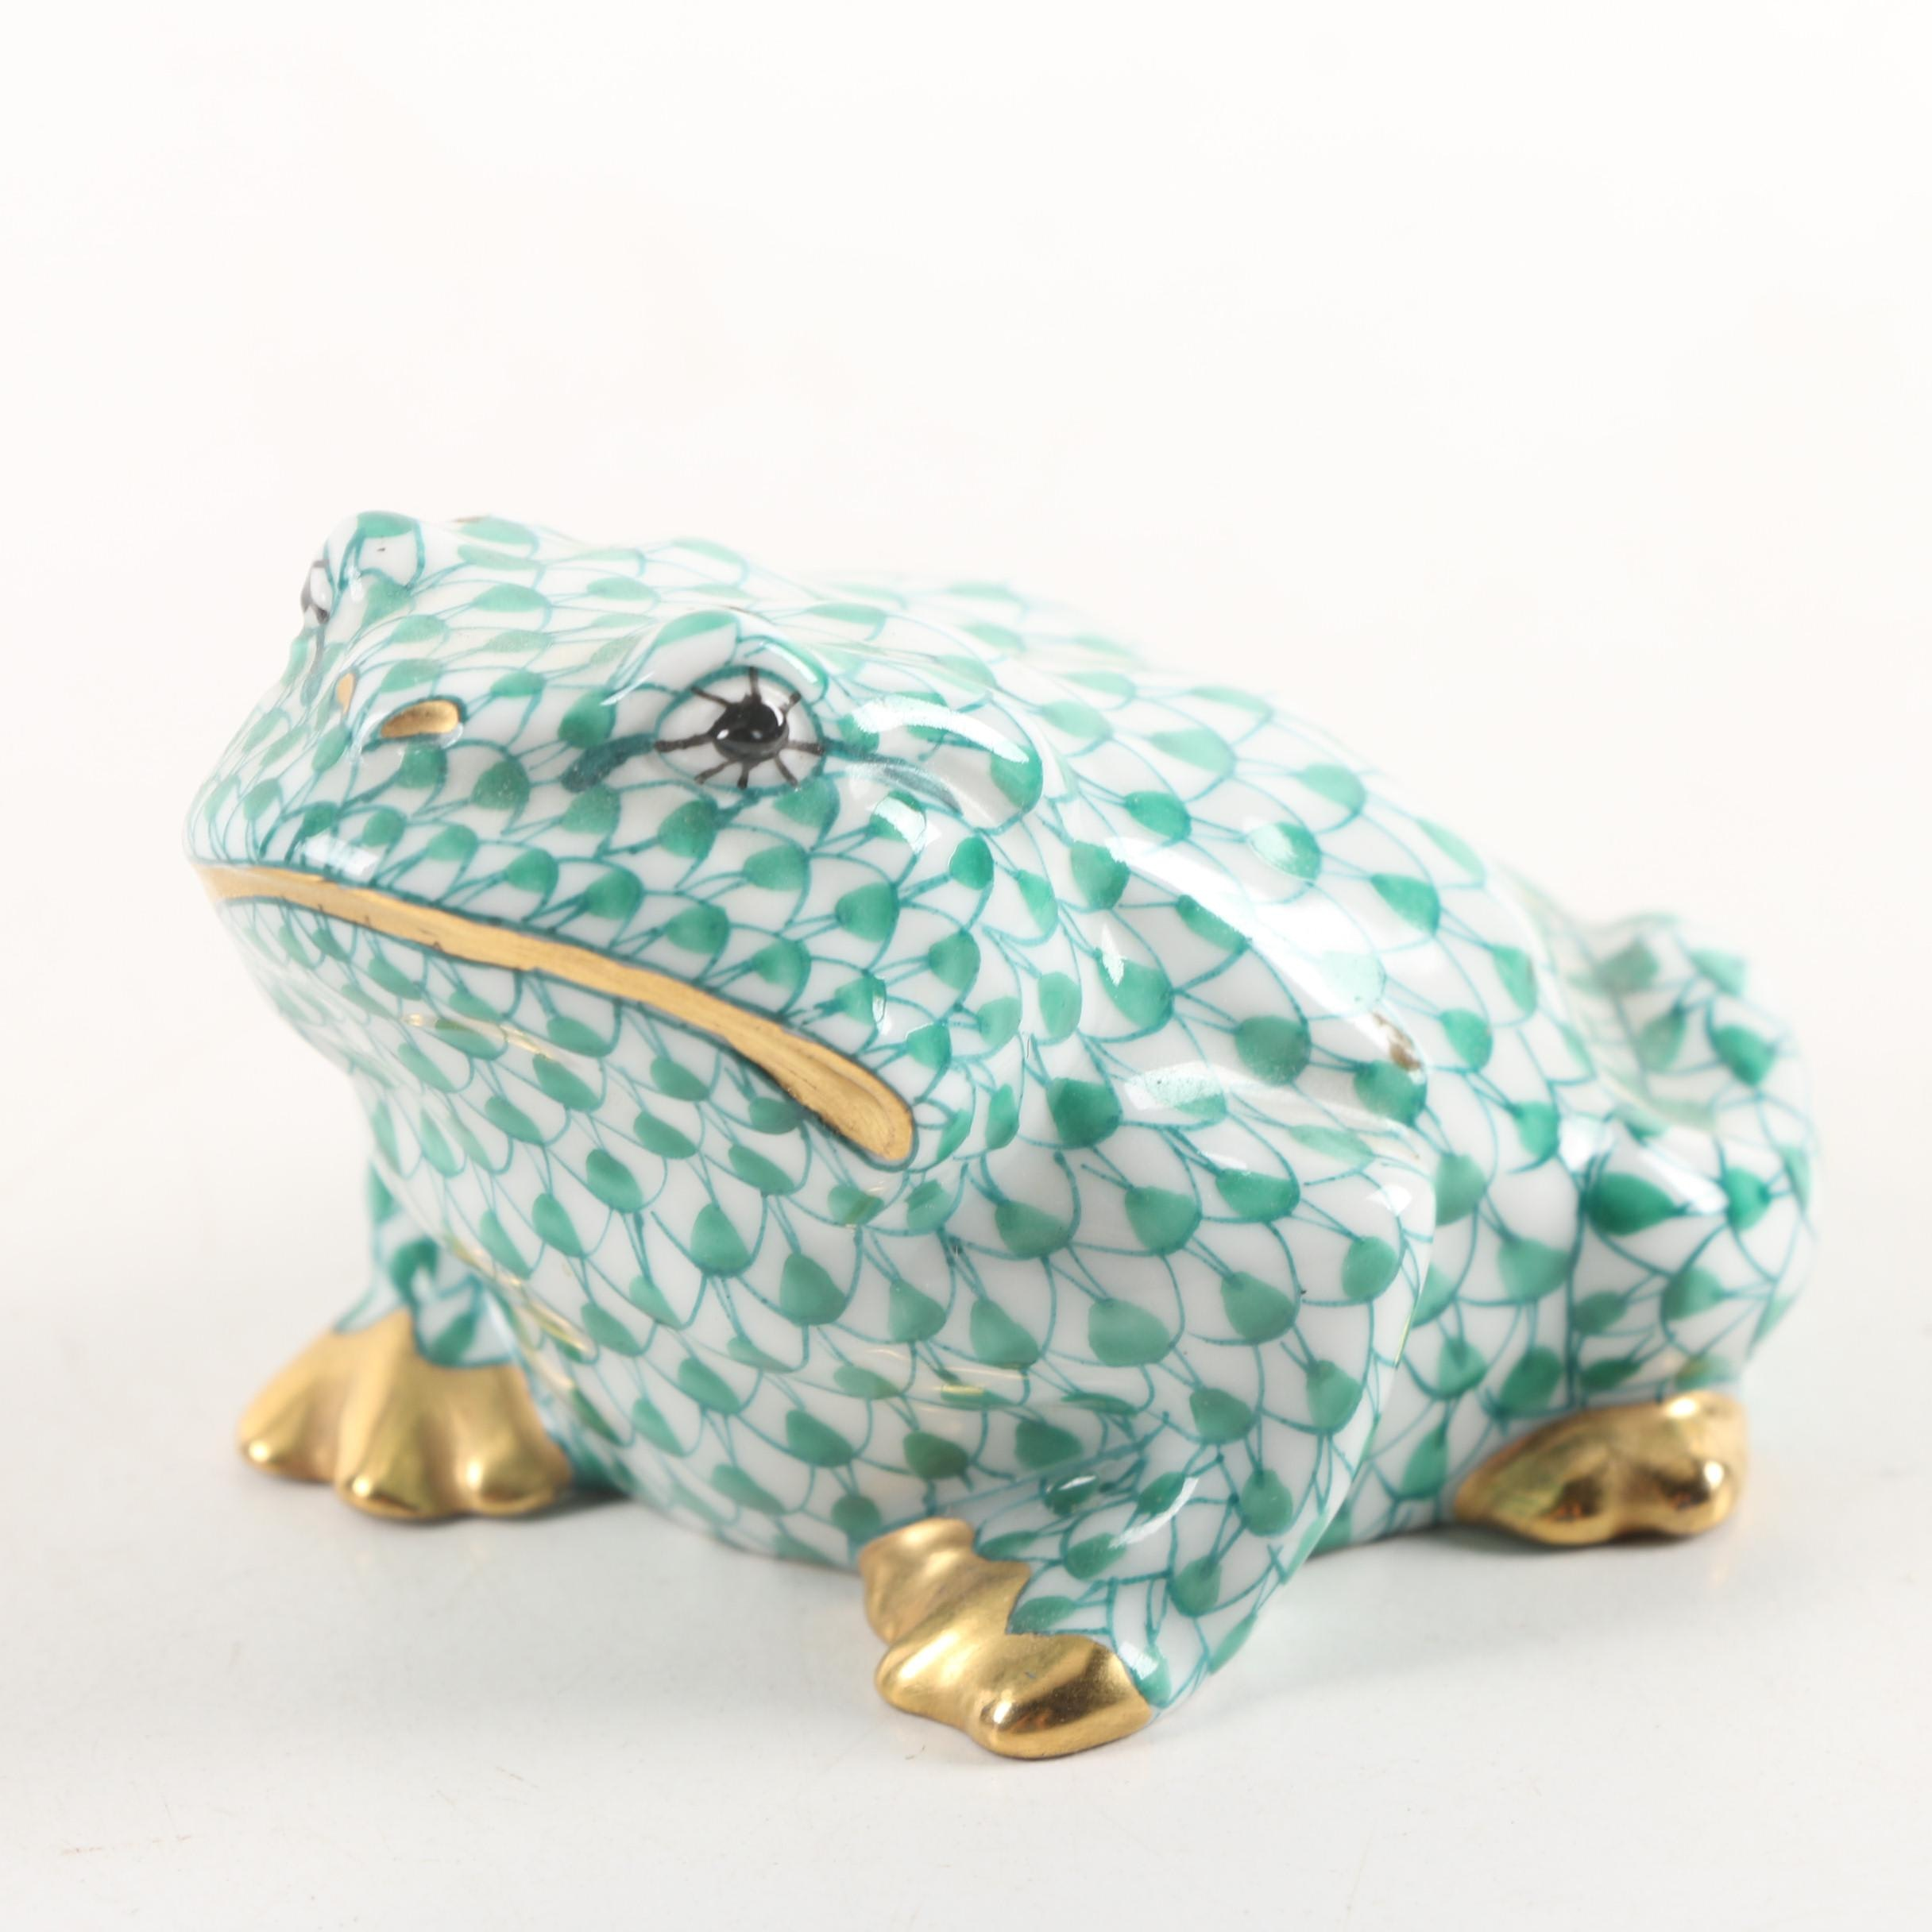 Herend Hand-Painted Porcelain Toad Figurine